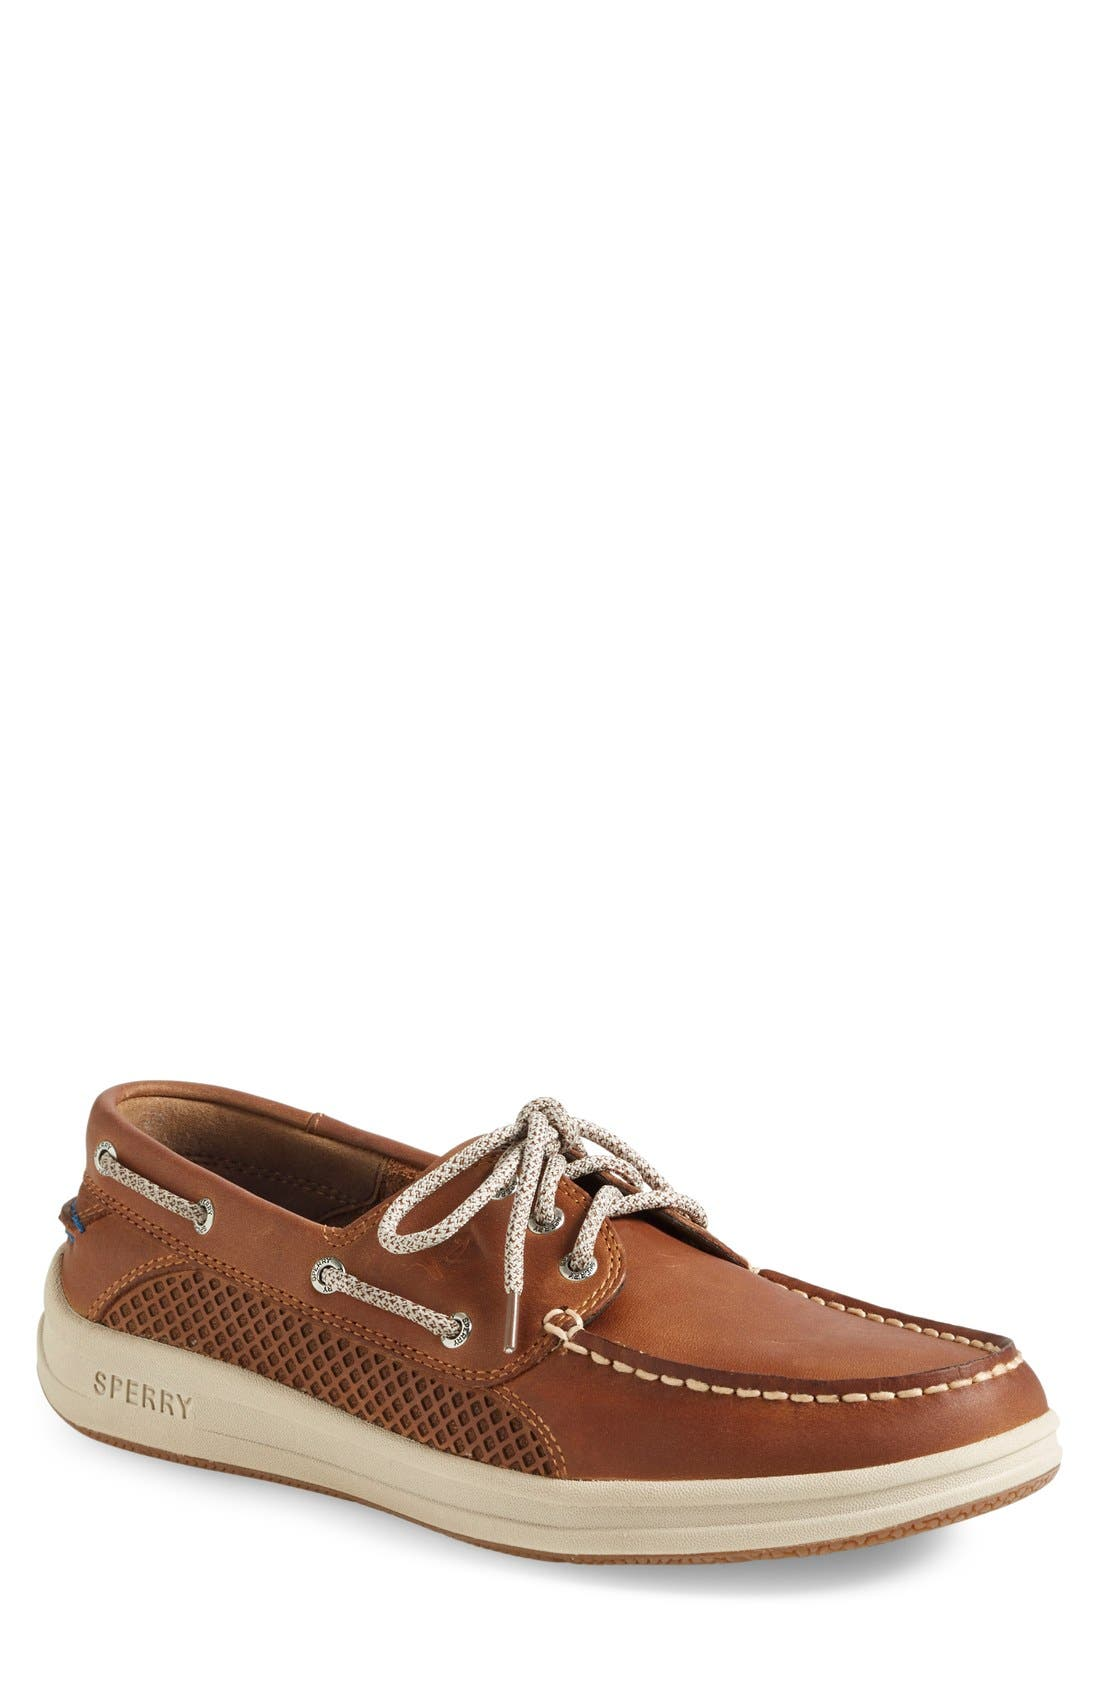 'Gamefish' Boat Shoe,                         Main,                         color, COGNAC LEATHER